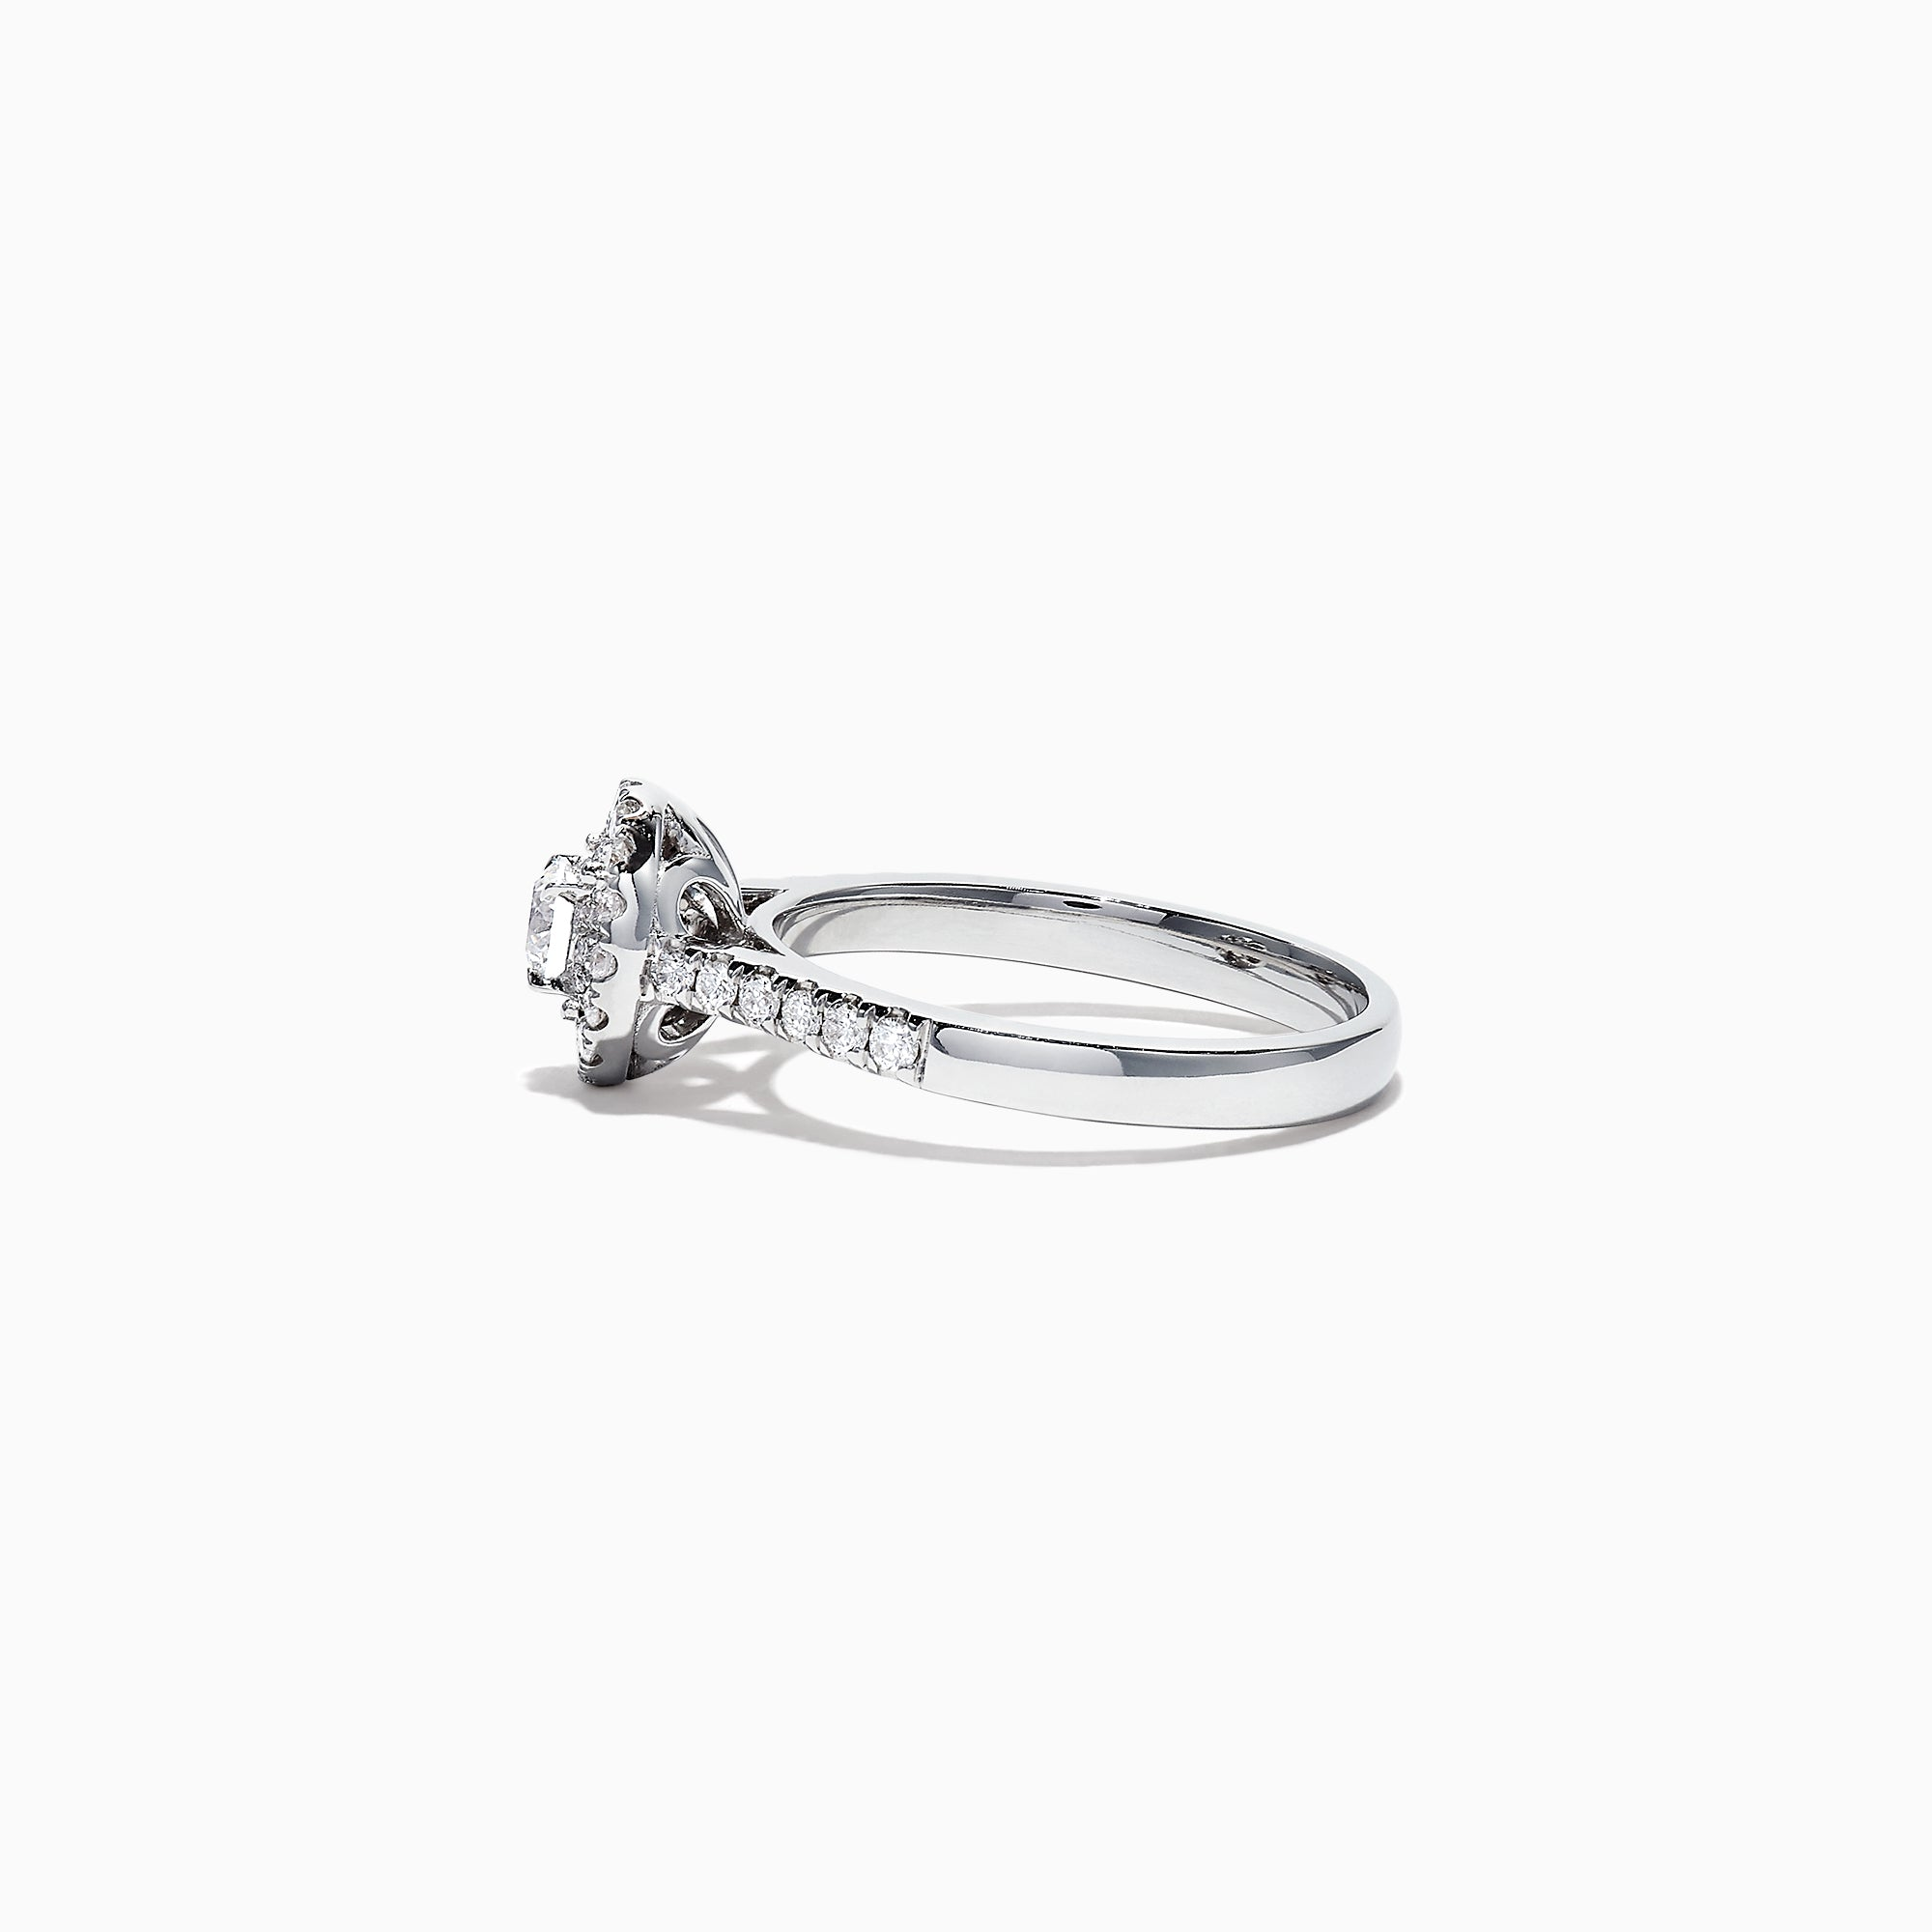 Effy Pave Classica 14K White Gold Diamond Halo Ring, 0.59 TCW